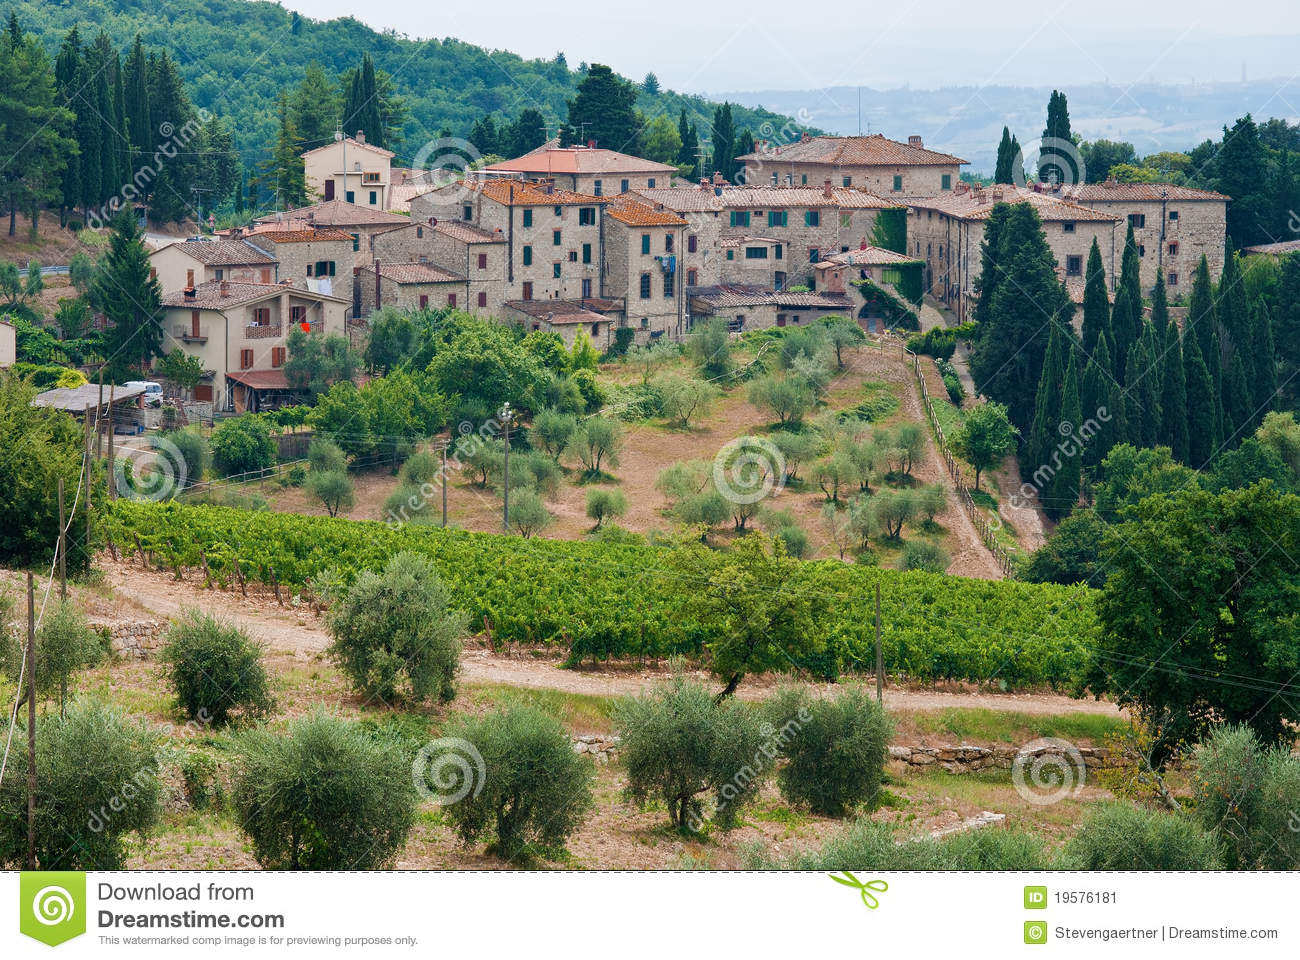 View of olive groves, vineyards and castellina of chianti, italy.